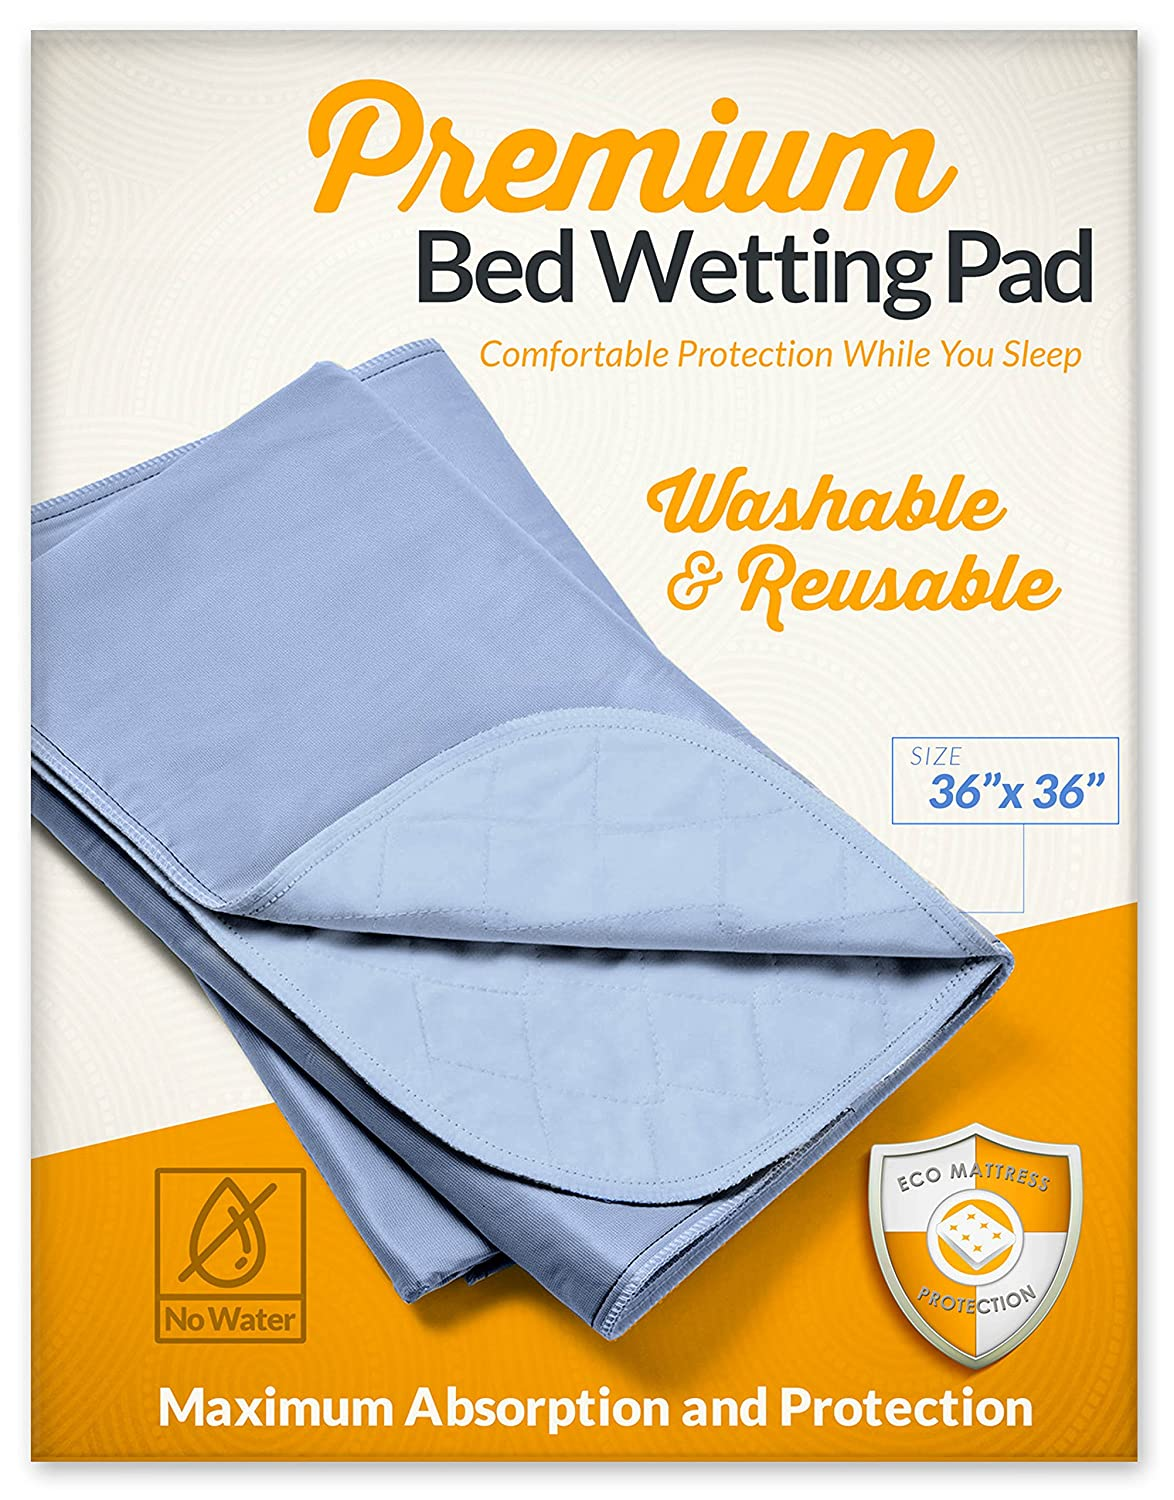 "2 Premium Ultra Waterproof Sheet Protectors- 36"" x 36"", Ideal For Children And Adult Incontinence Protection, Innovative 4 Layer Design, 6 Cups Absorbency, Dryer Safe and Bleachable. Zero Waste Moving"